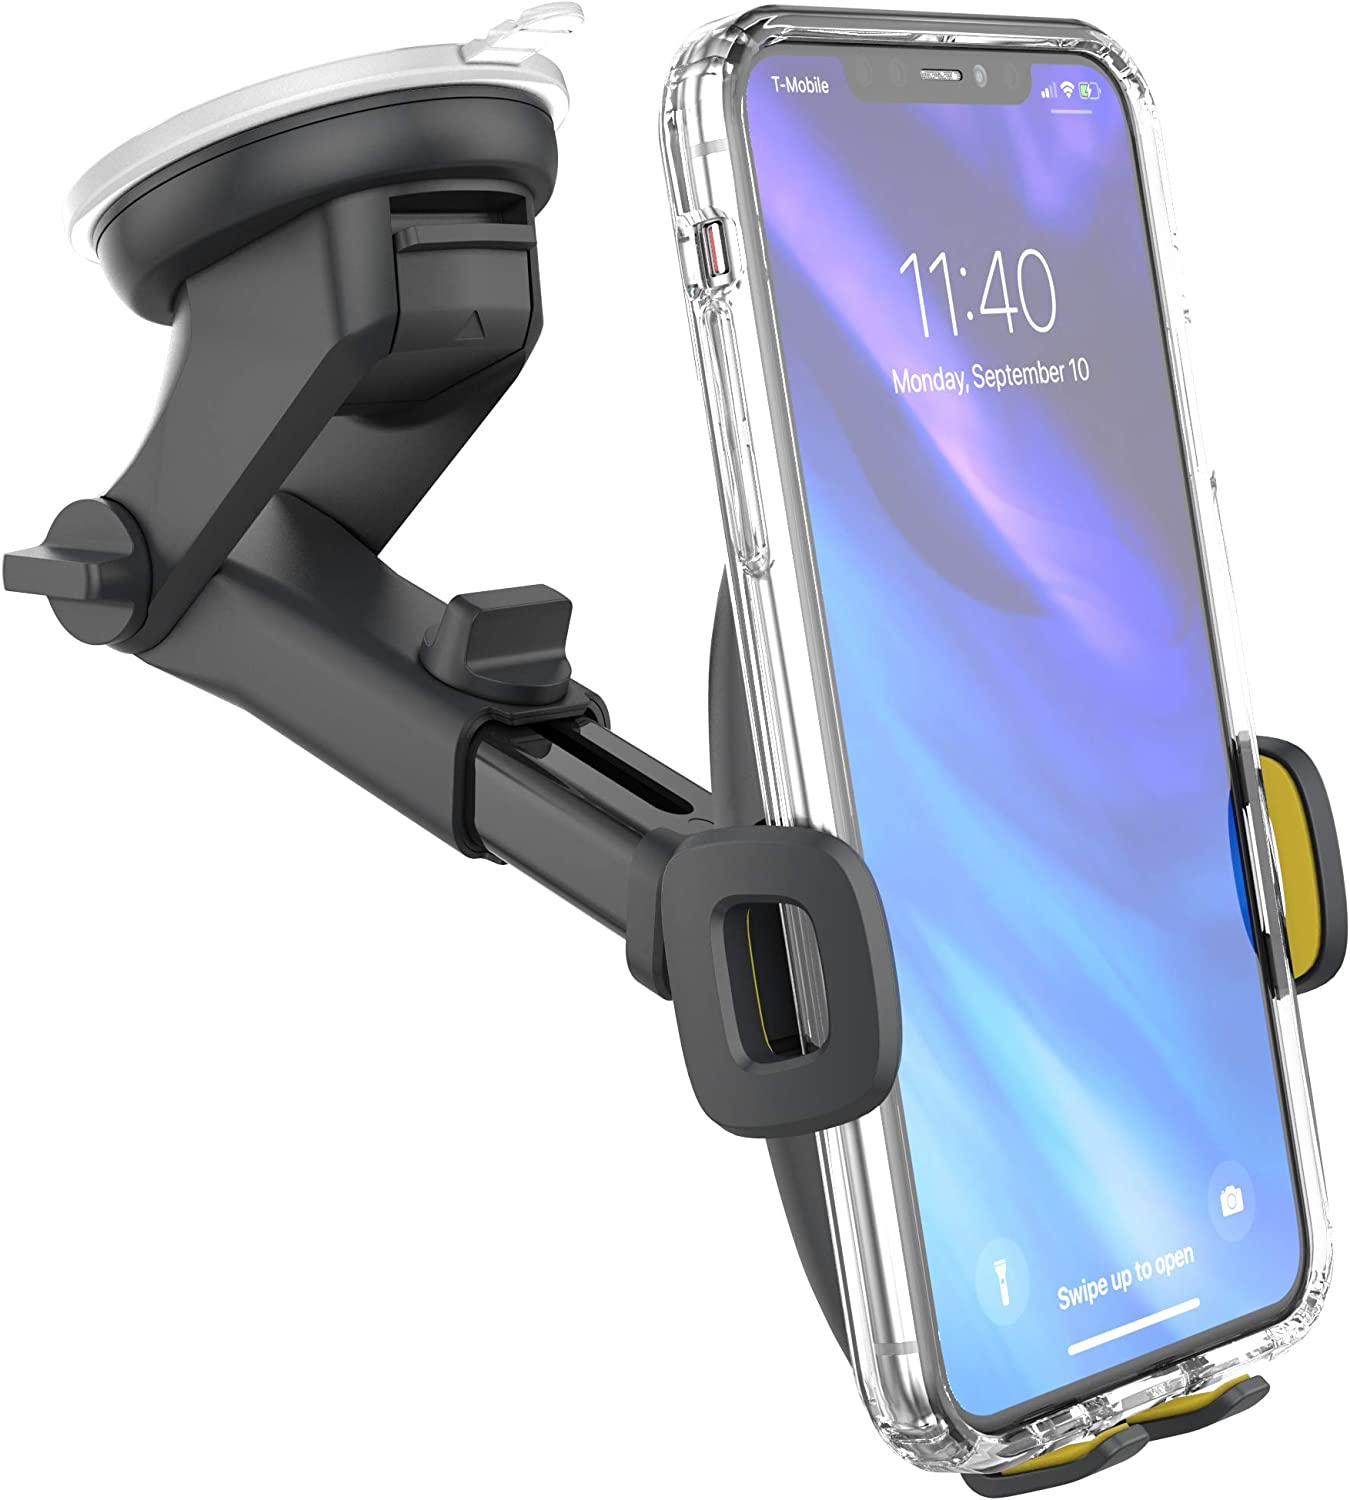 Dark Grey Car Phone Holder for Car CD Mount Holder Phone Stand NABEE Phone Grip Smart Holder Smartphone Accessories Compatible with Cell iPhone 11 Pro Xs Max XR X 8 7 6 6s Plus Samsung Galaxy